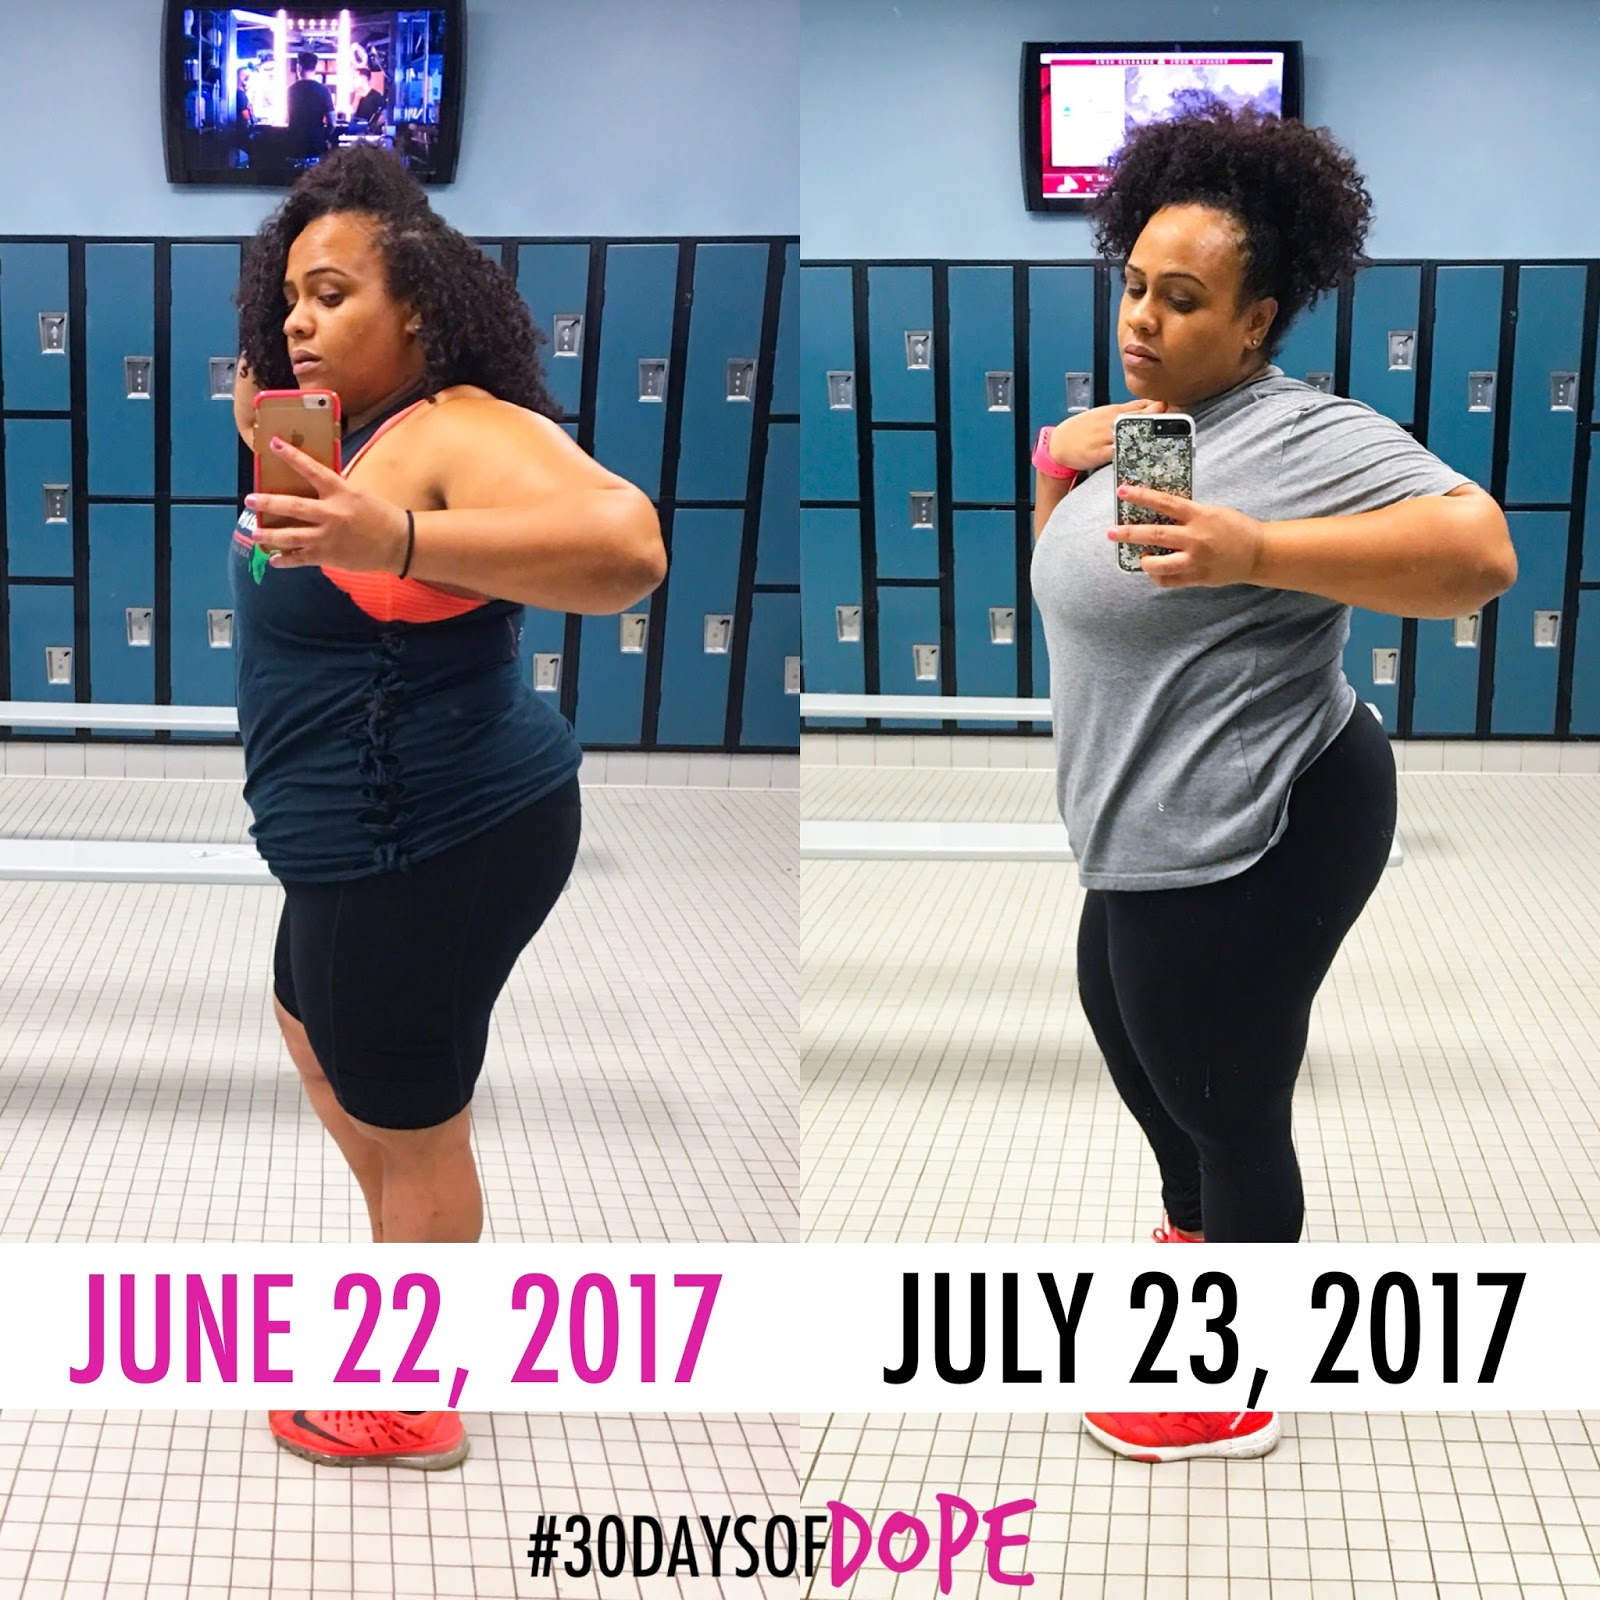 #30DaysofDope - July 2017 Update